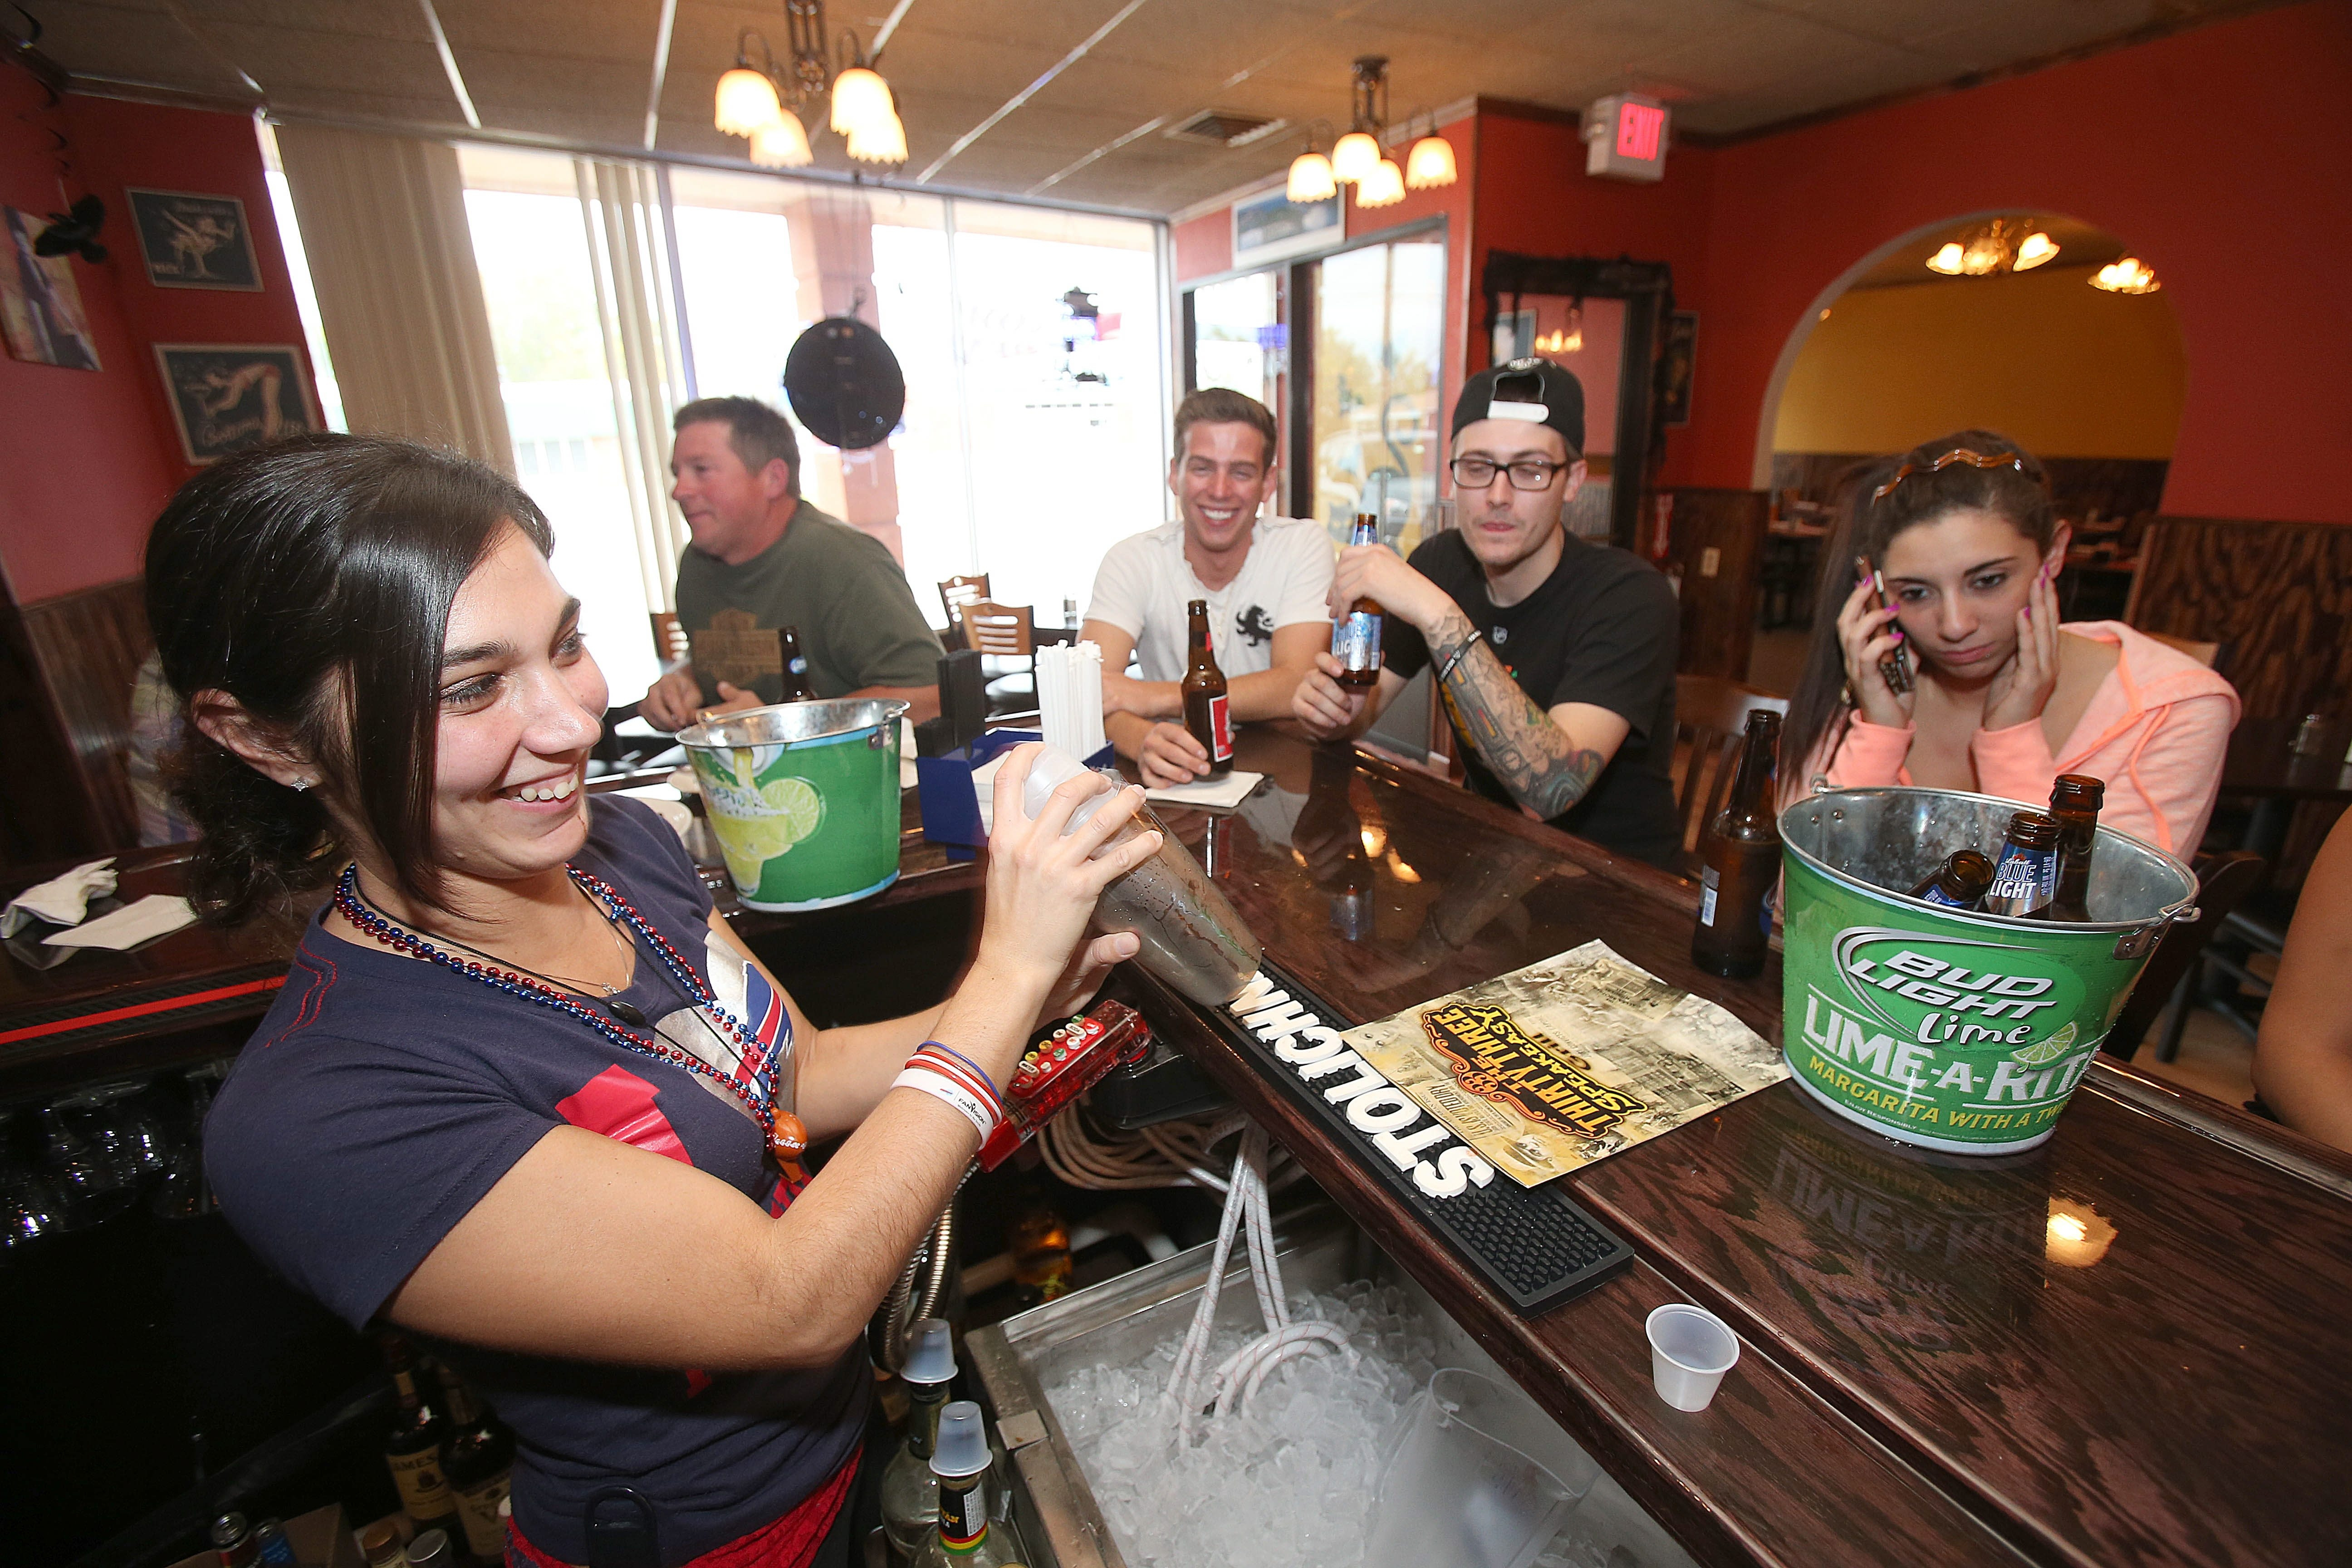 Bartender/Manager Holly Monin shakes up a drink and keeps the patrons happy during the Bills game Sunday at Thirty Three Speakeasy Grill in Cheektowaga.